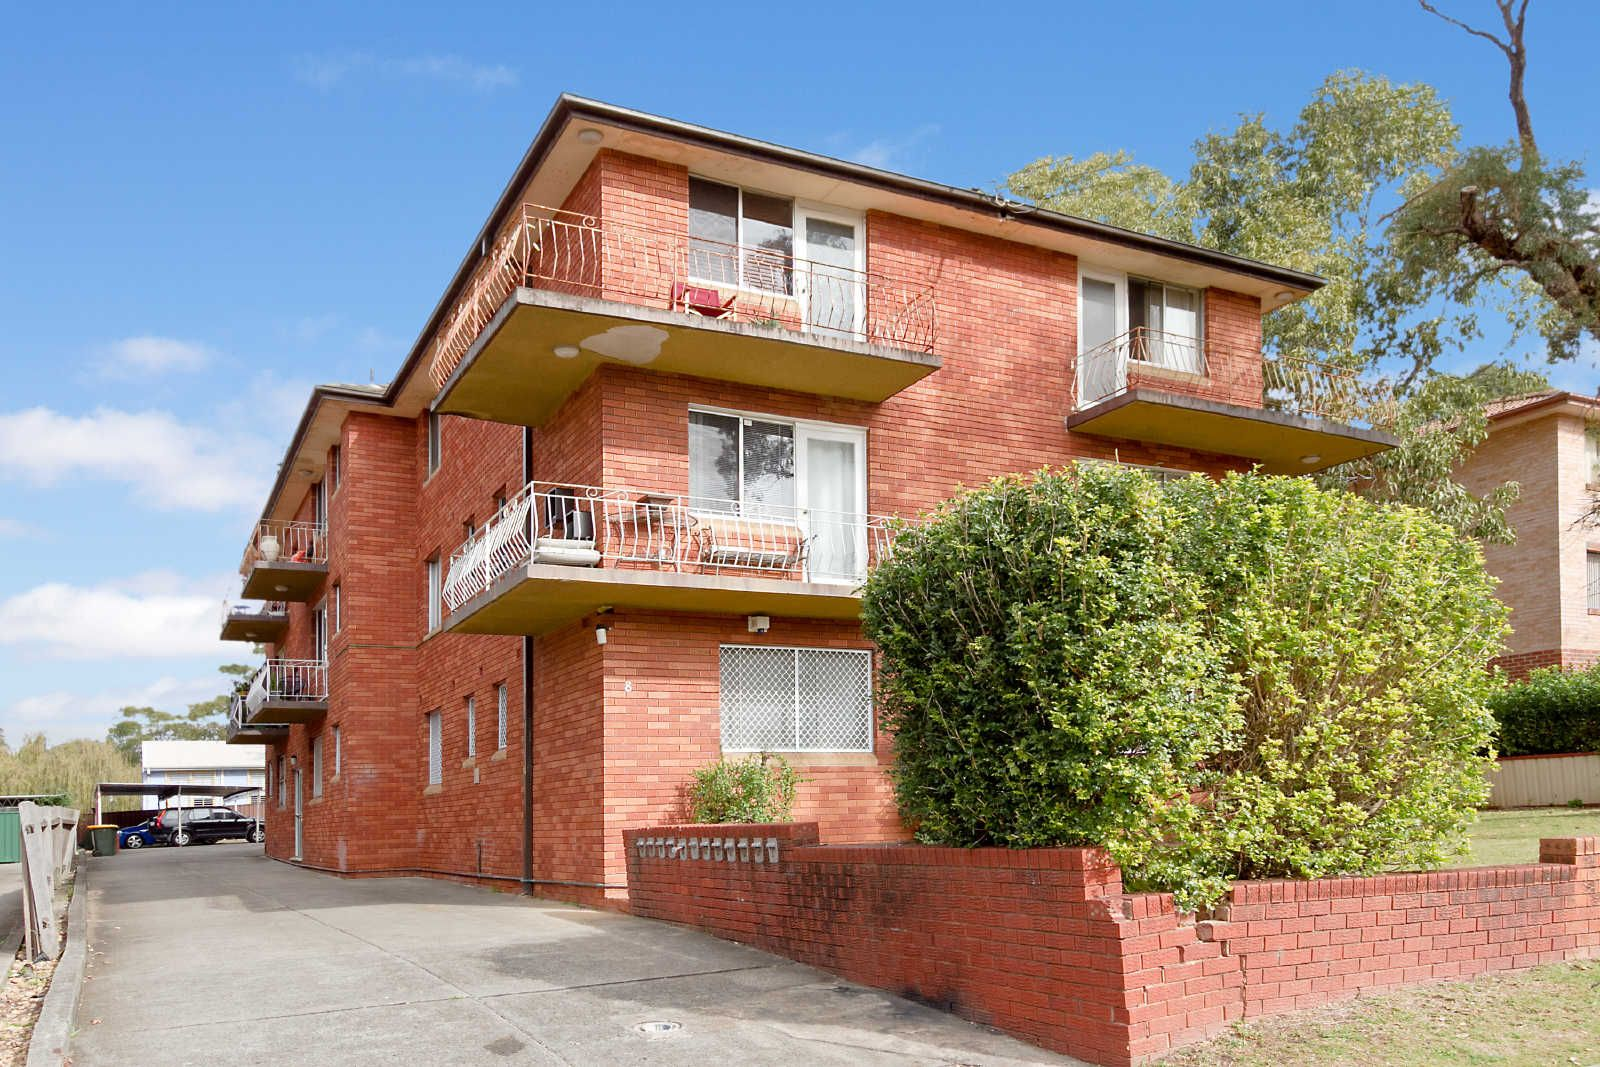 11/8 CALLIOPE STREET, Guildford NSW 2161, Image 0